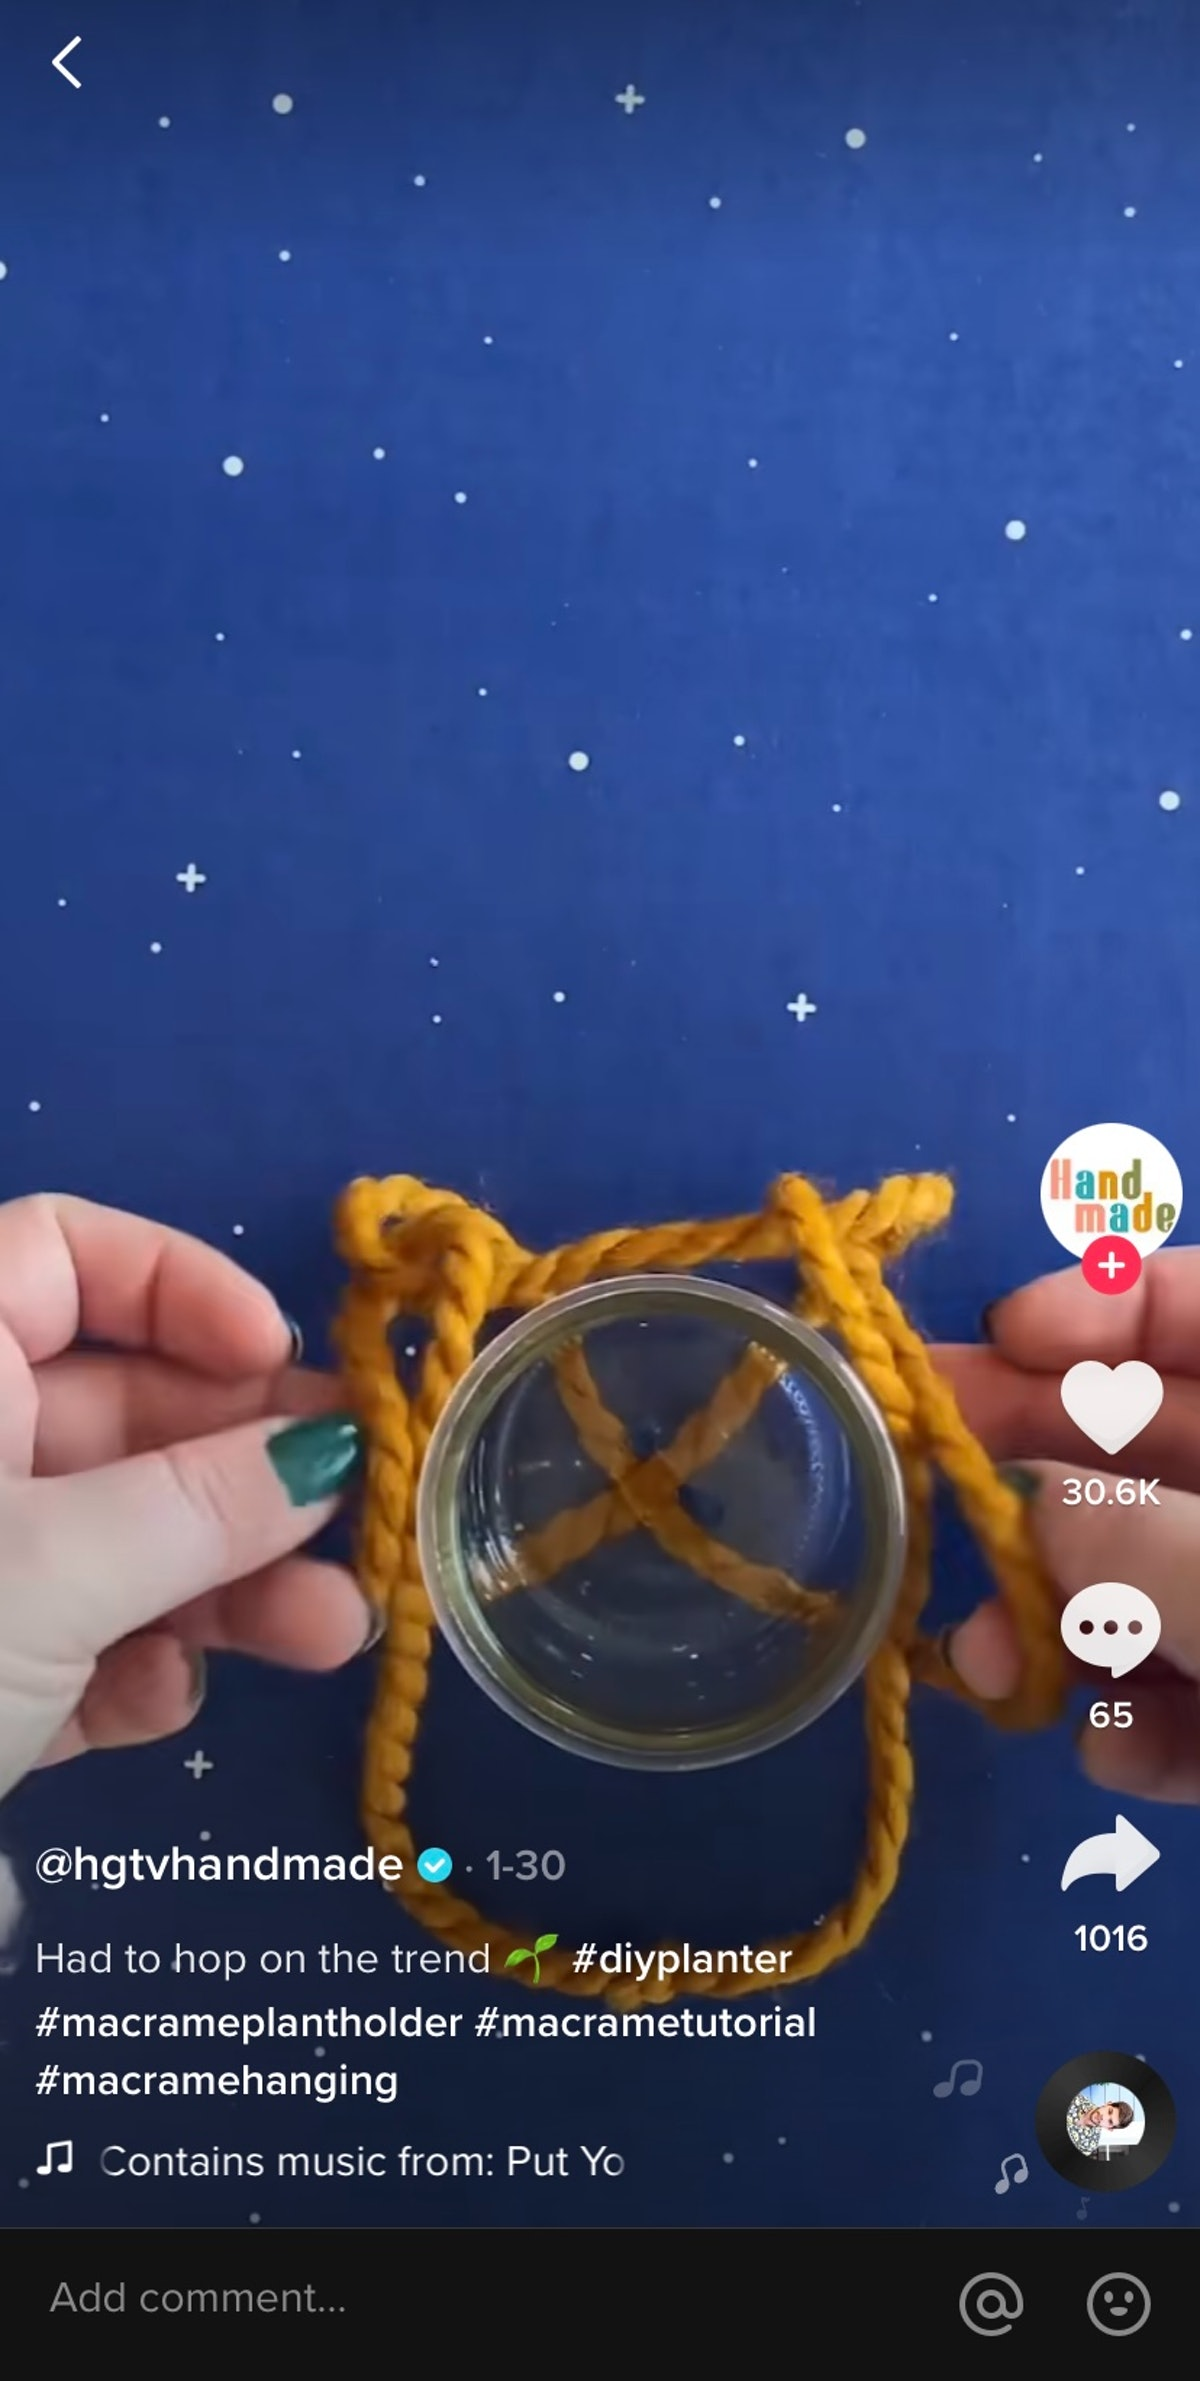 A TikTok user folds a yellow rope while making a macrame plant hanging on the app.